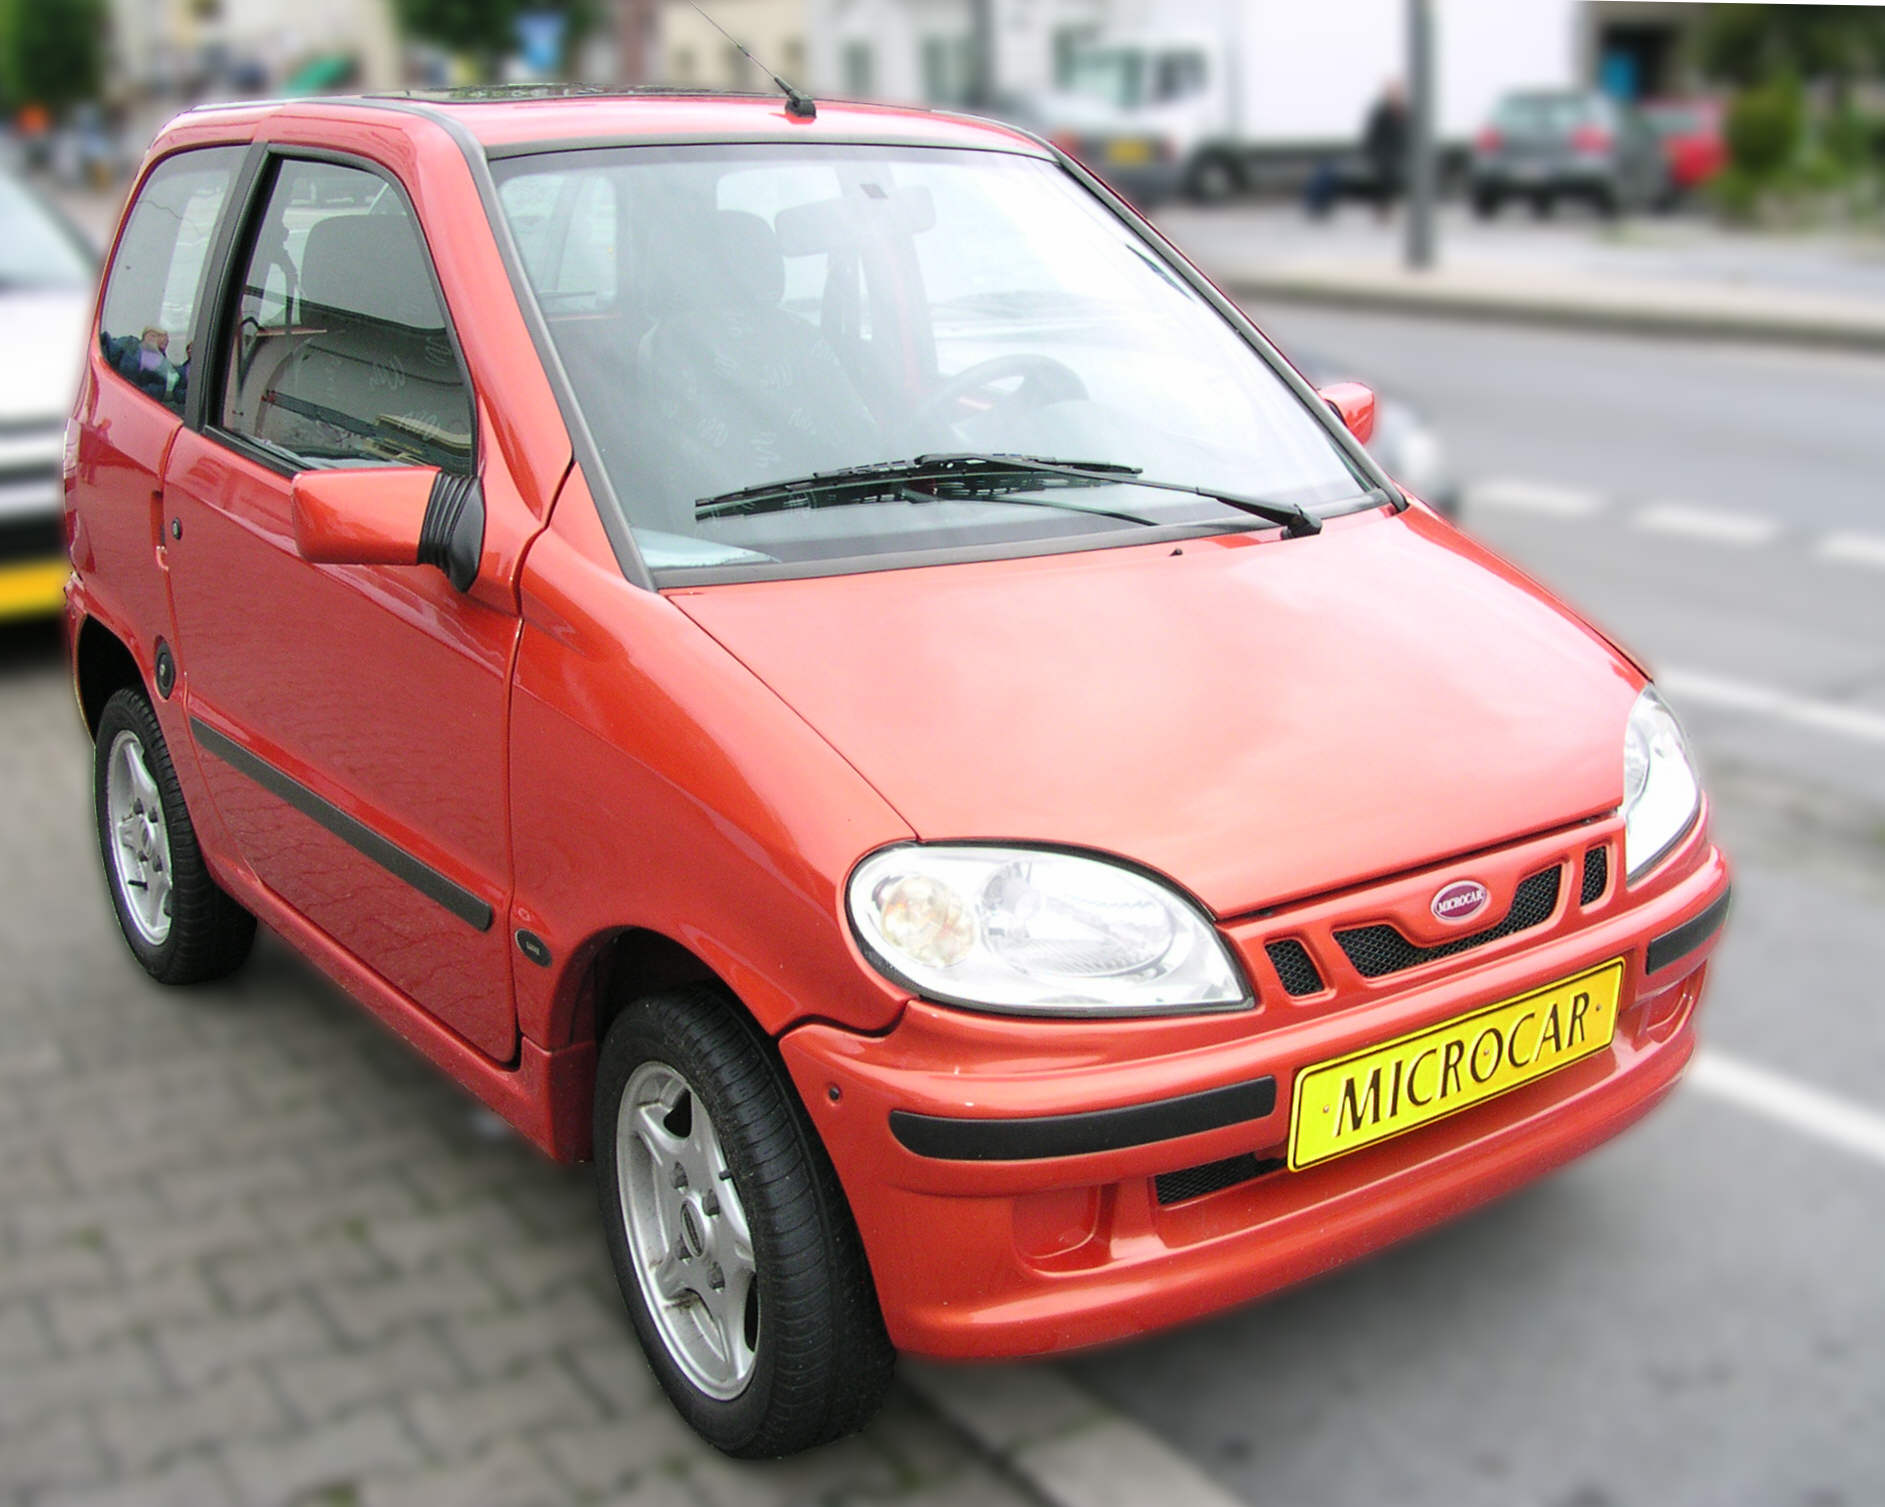 Microcar virgo photo - 4